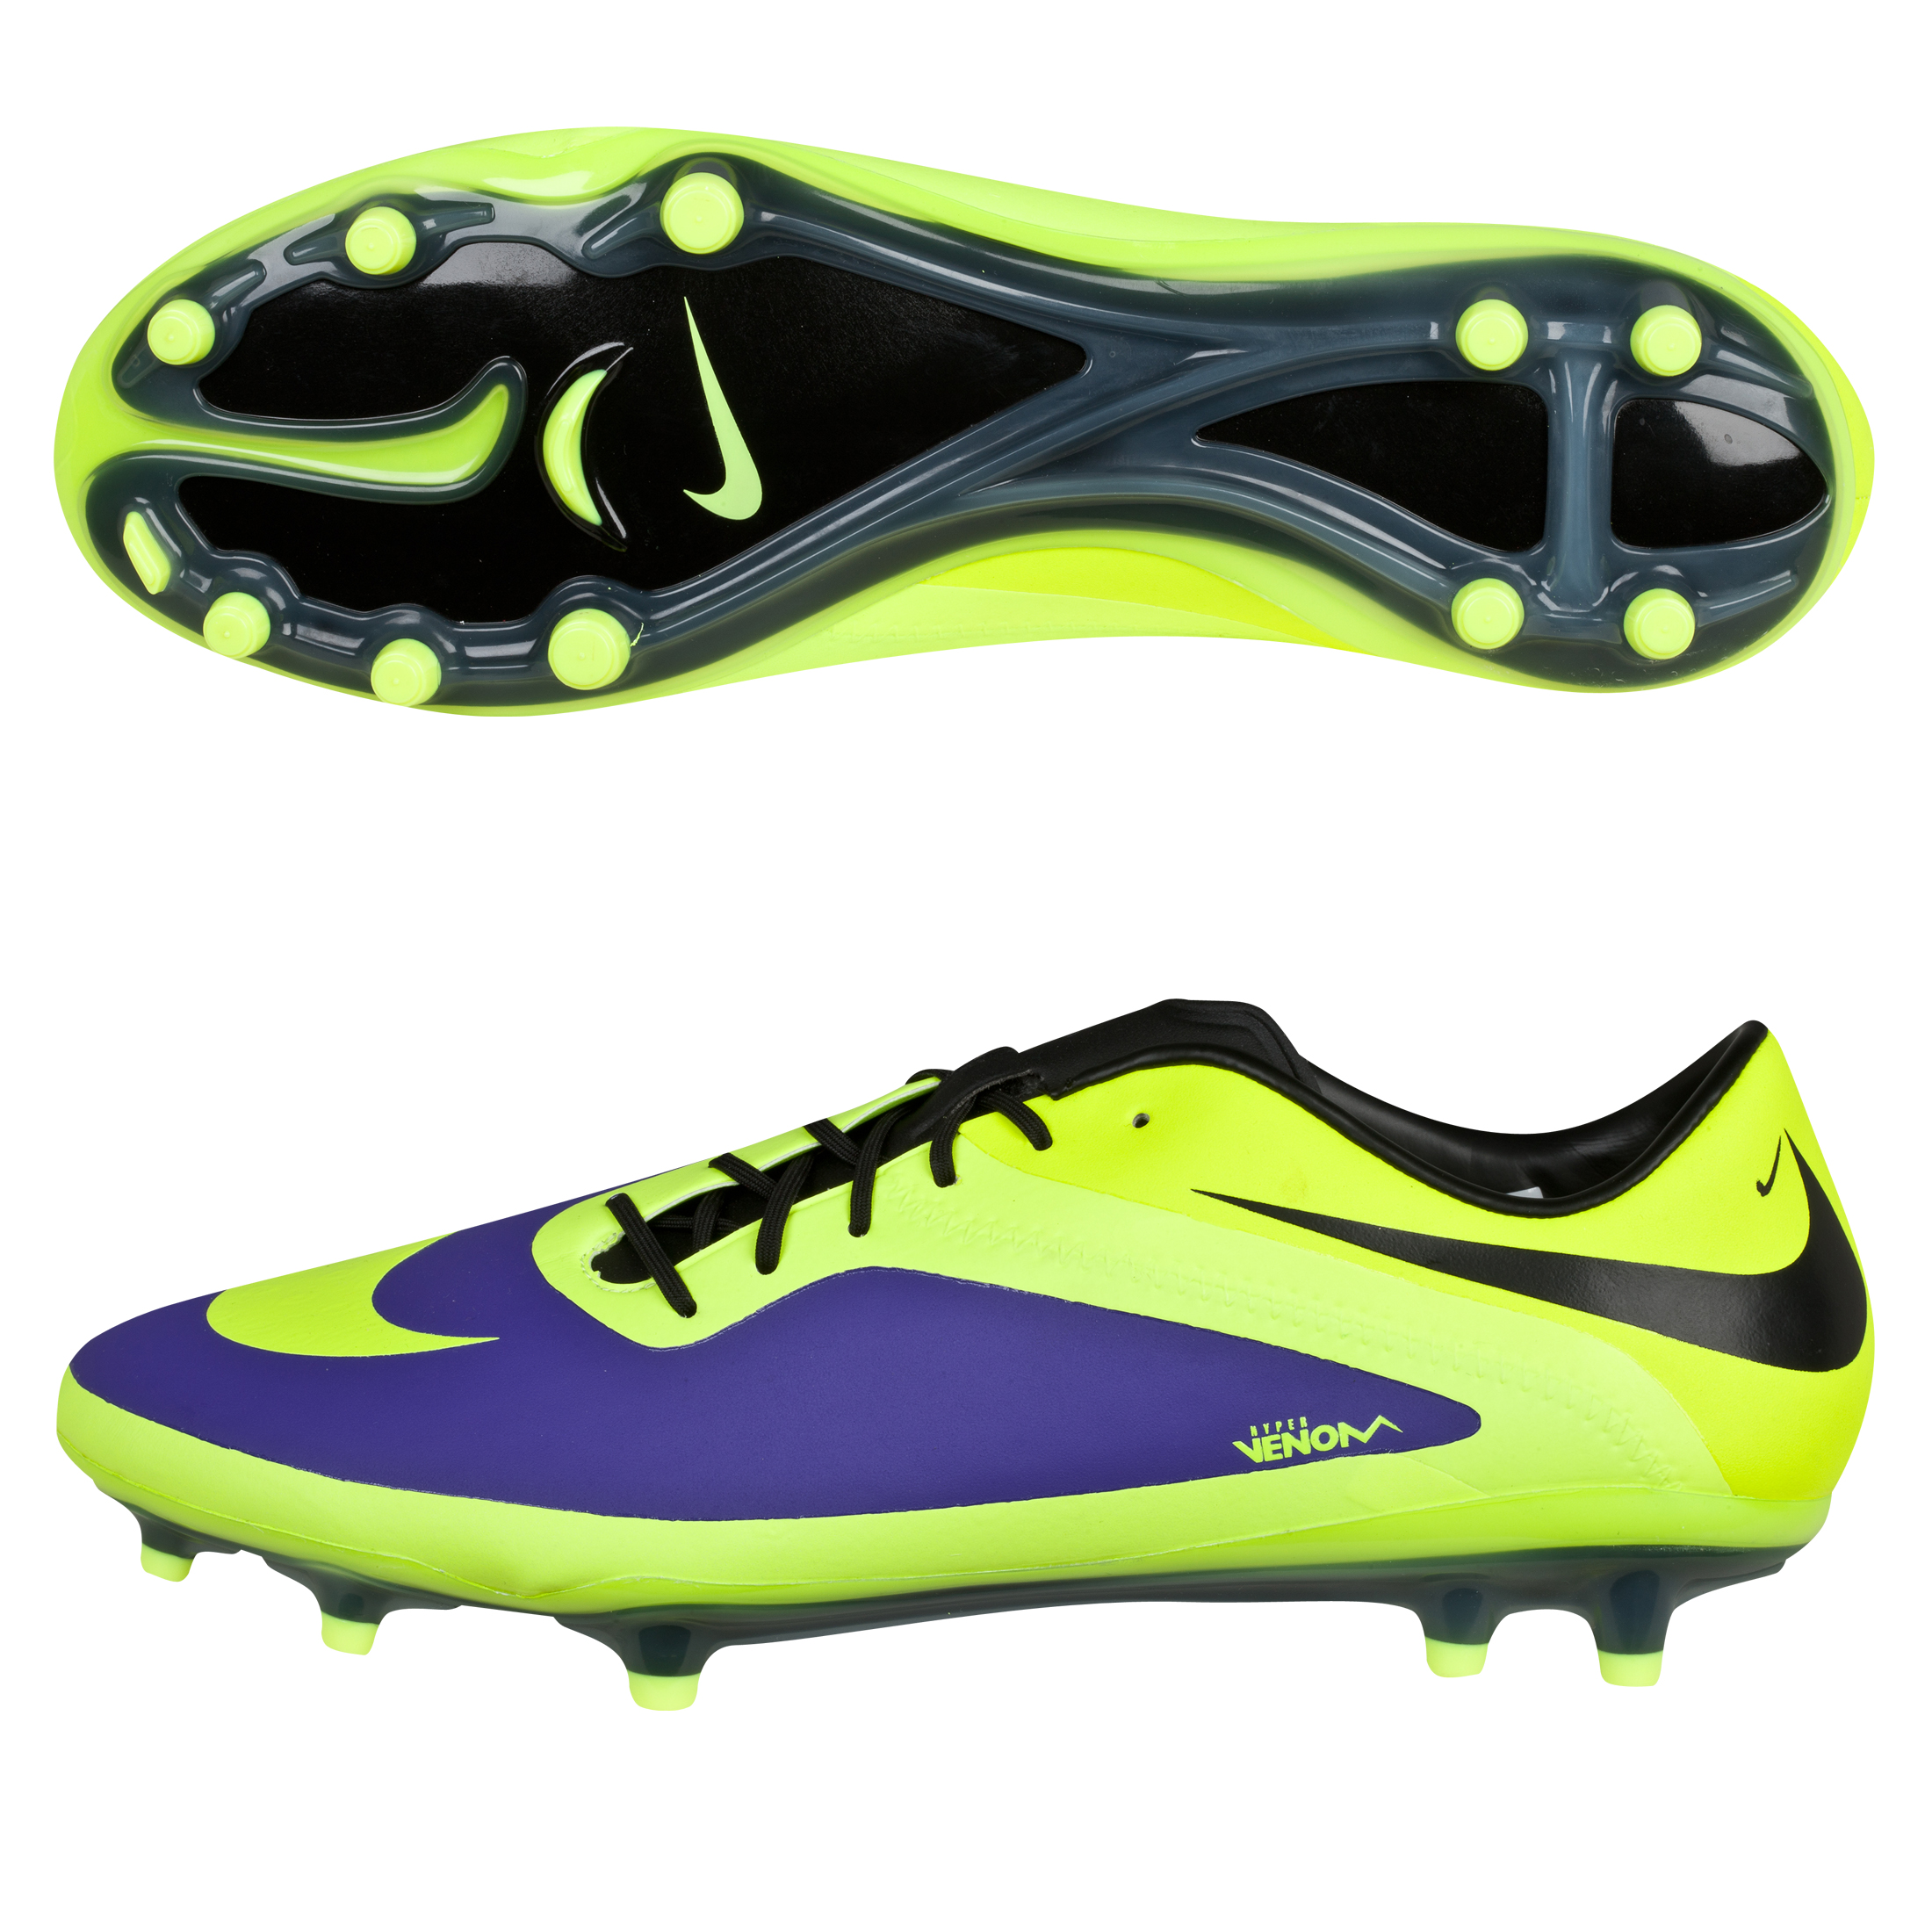 Hypervenom Phatal FG -Electro Purple/Volt/Black Purple